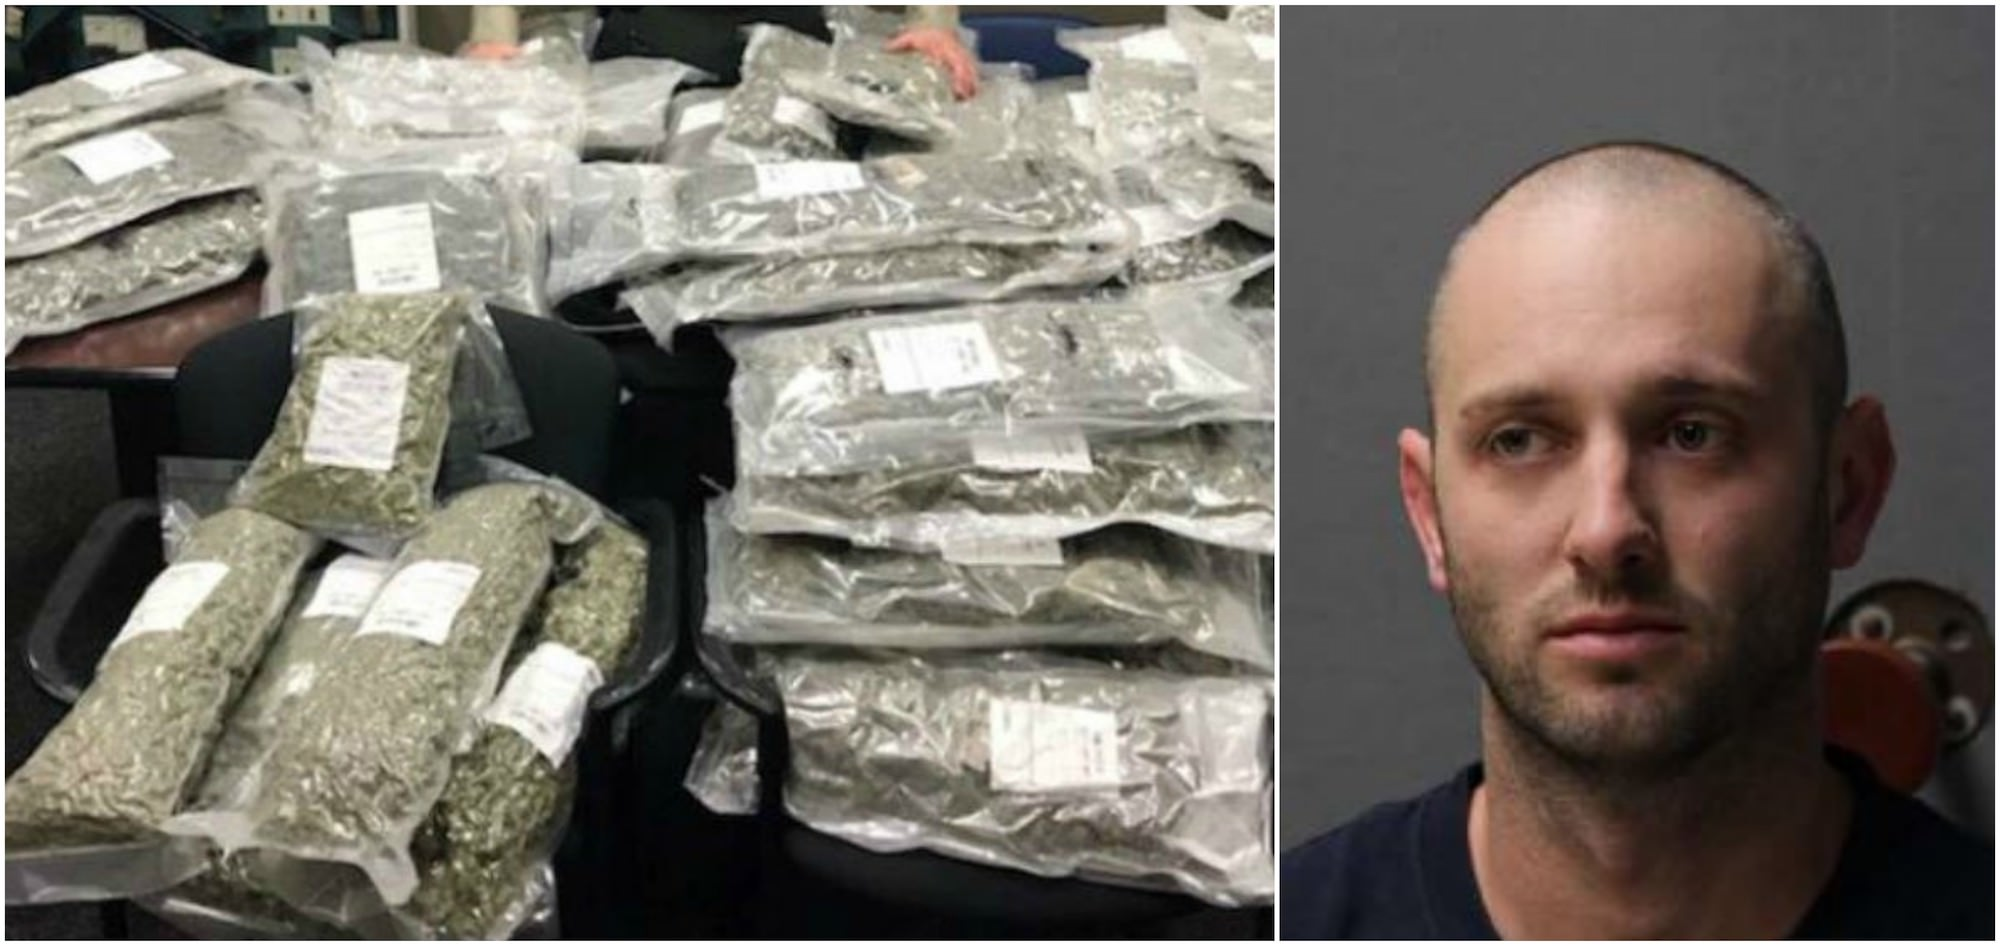 Woodbury County traffic stop leads to drug arrest for 77lbs of marijuana found